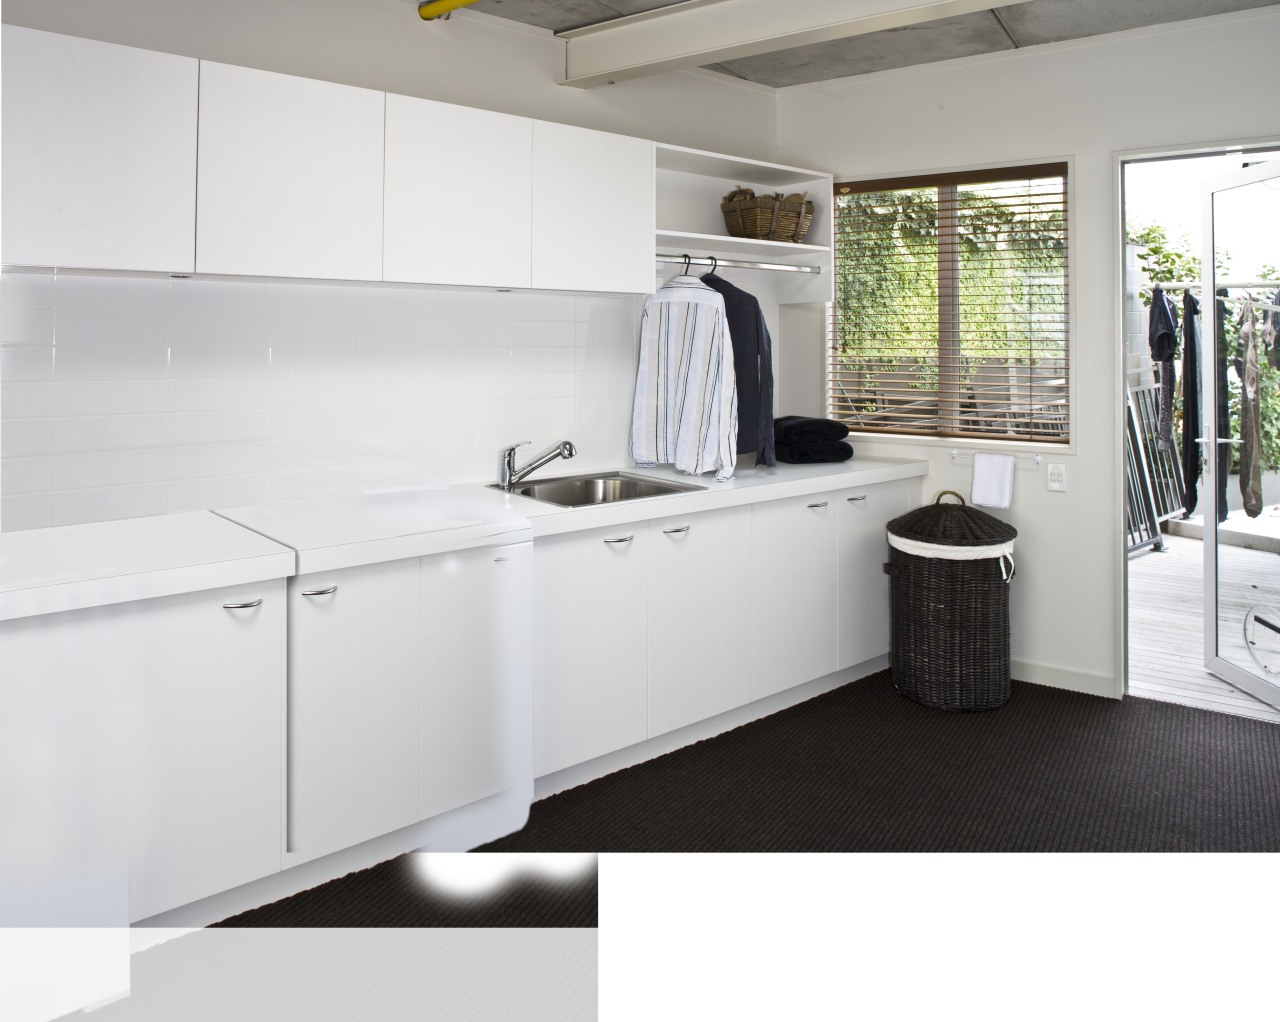 Laundry with white appliances and white cupboards. countertop, floor, interior design, kitchen, product design, room, white